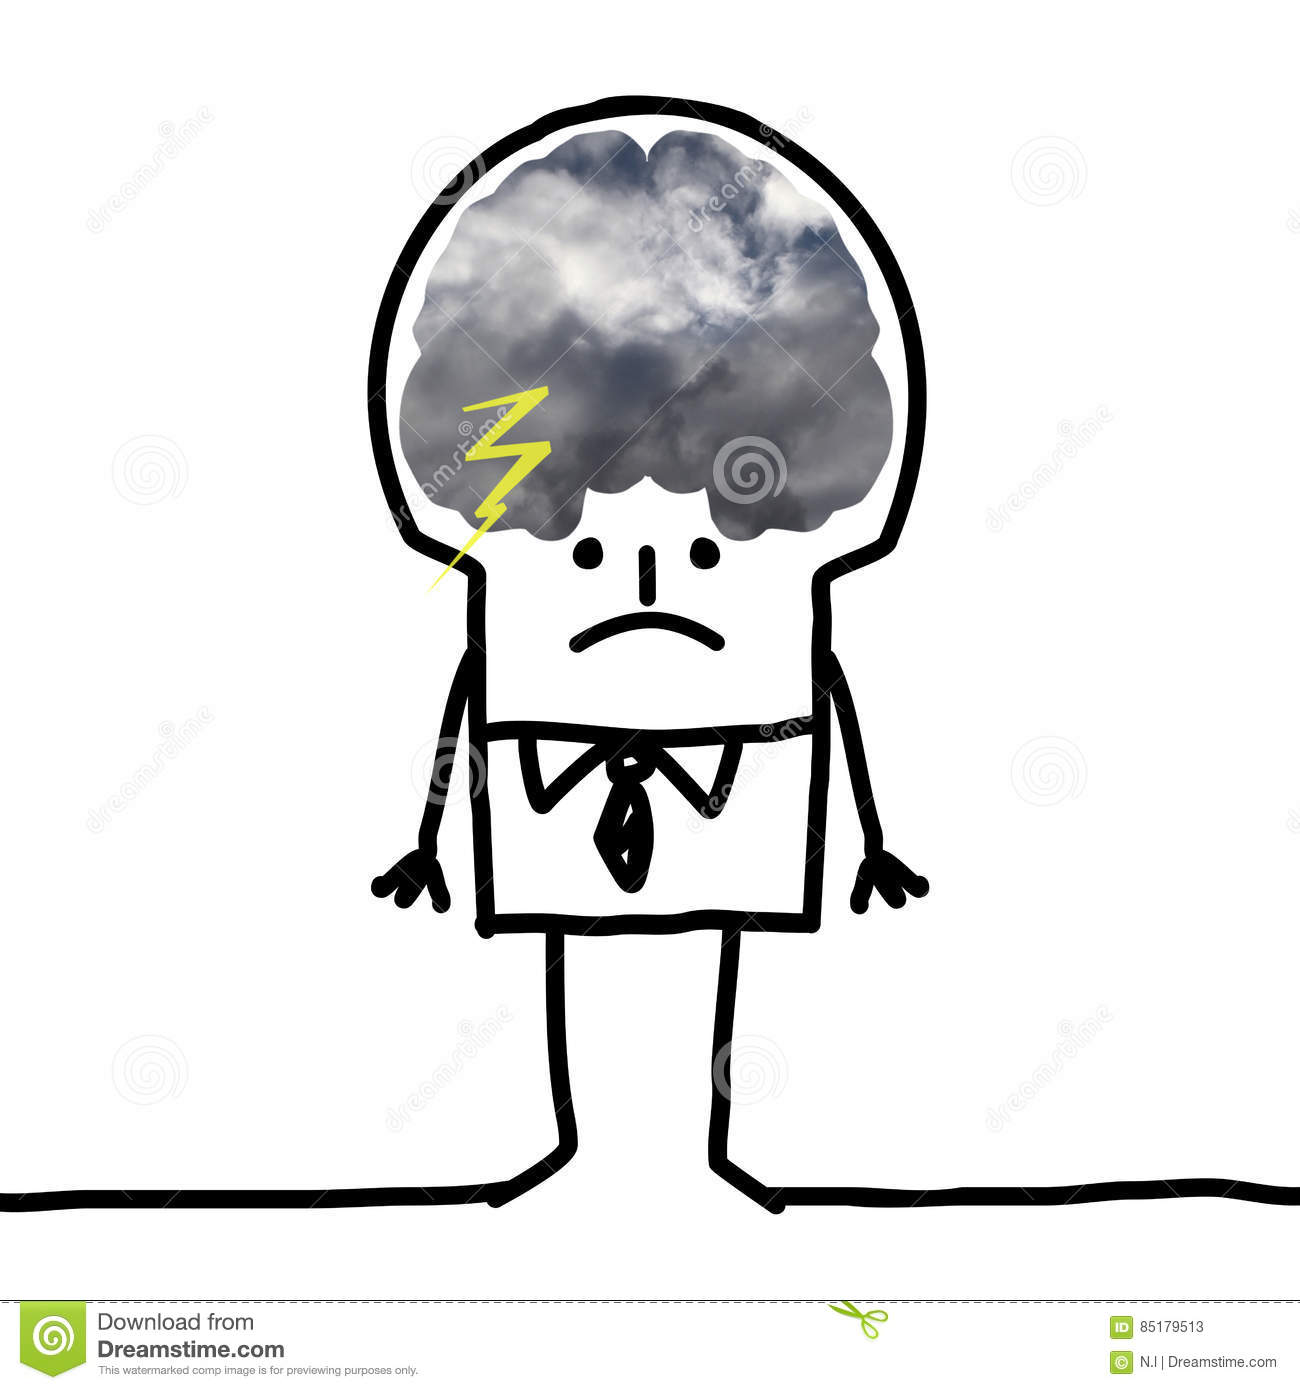 Big brain man pessimism and clouds stock illustration download big brain man pessimism and clouds stock illustration illustration of montage human thecheapjerseys Gallery